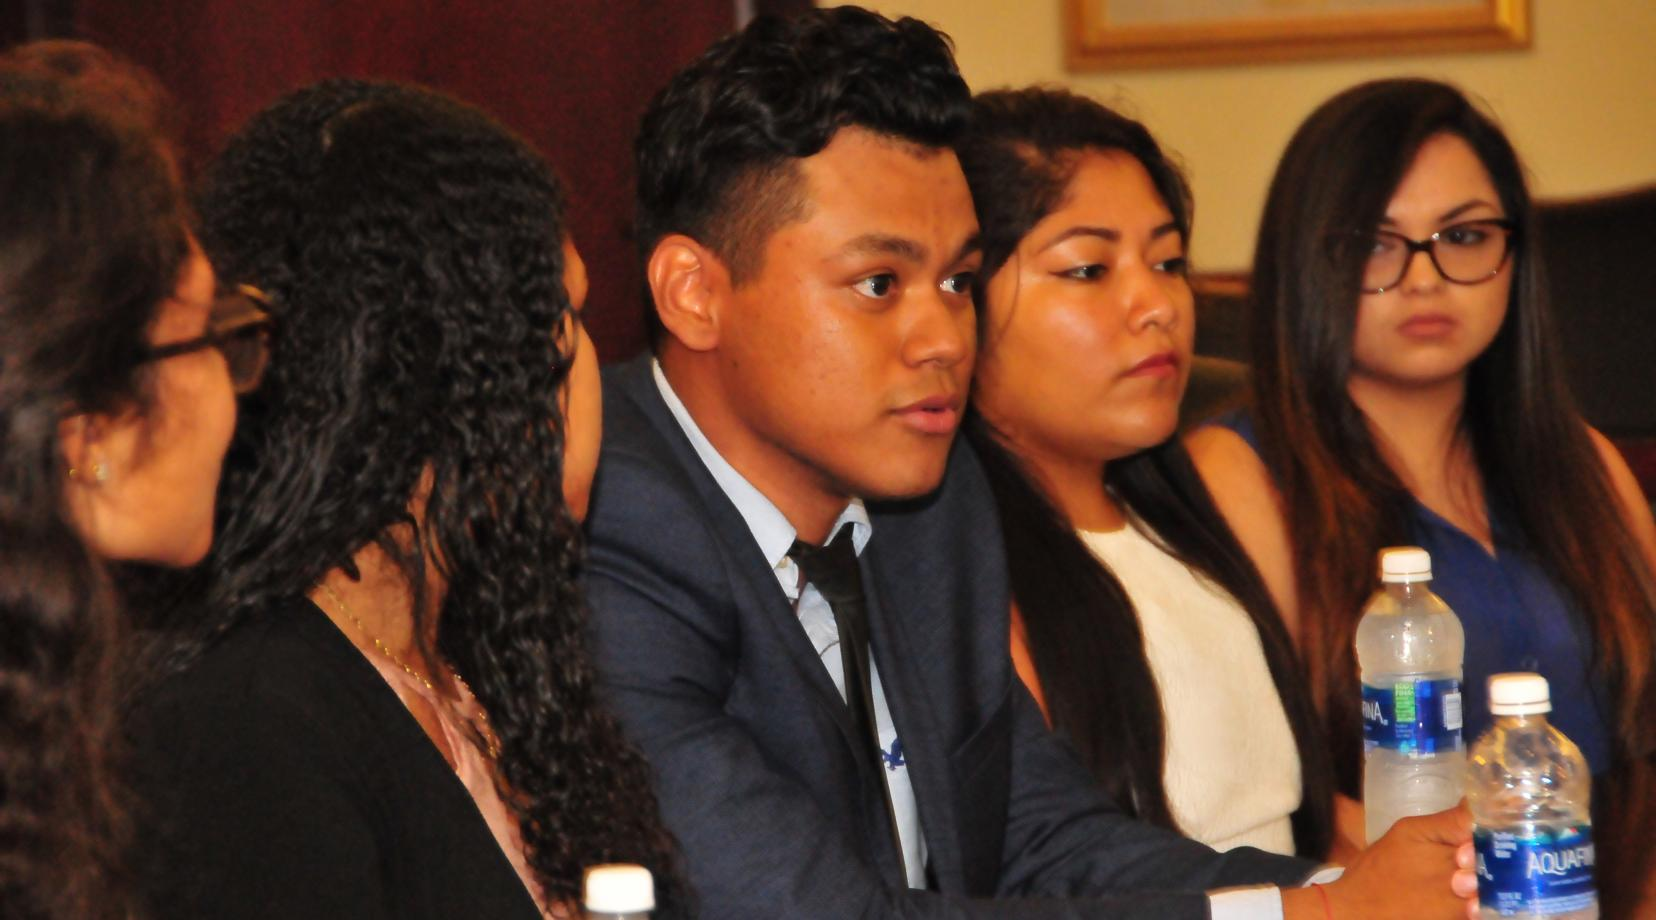 <p>Kevin Gutierrez, a sophomore Dreamer from El Salvador, shares his feelings about being a Dreamer. He is quoted at the beginning of the below statement from Provost Tony Allen.</p>